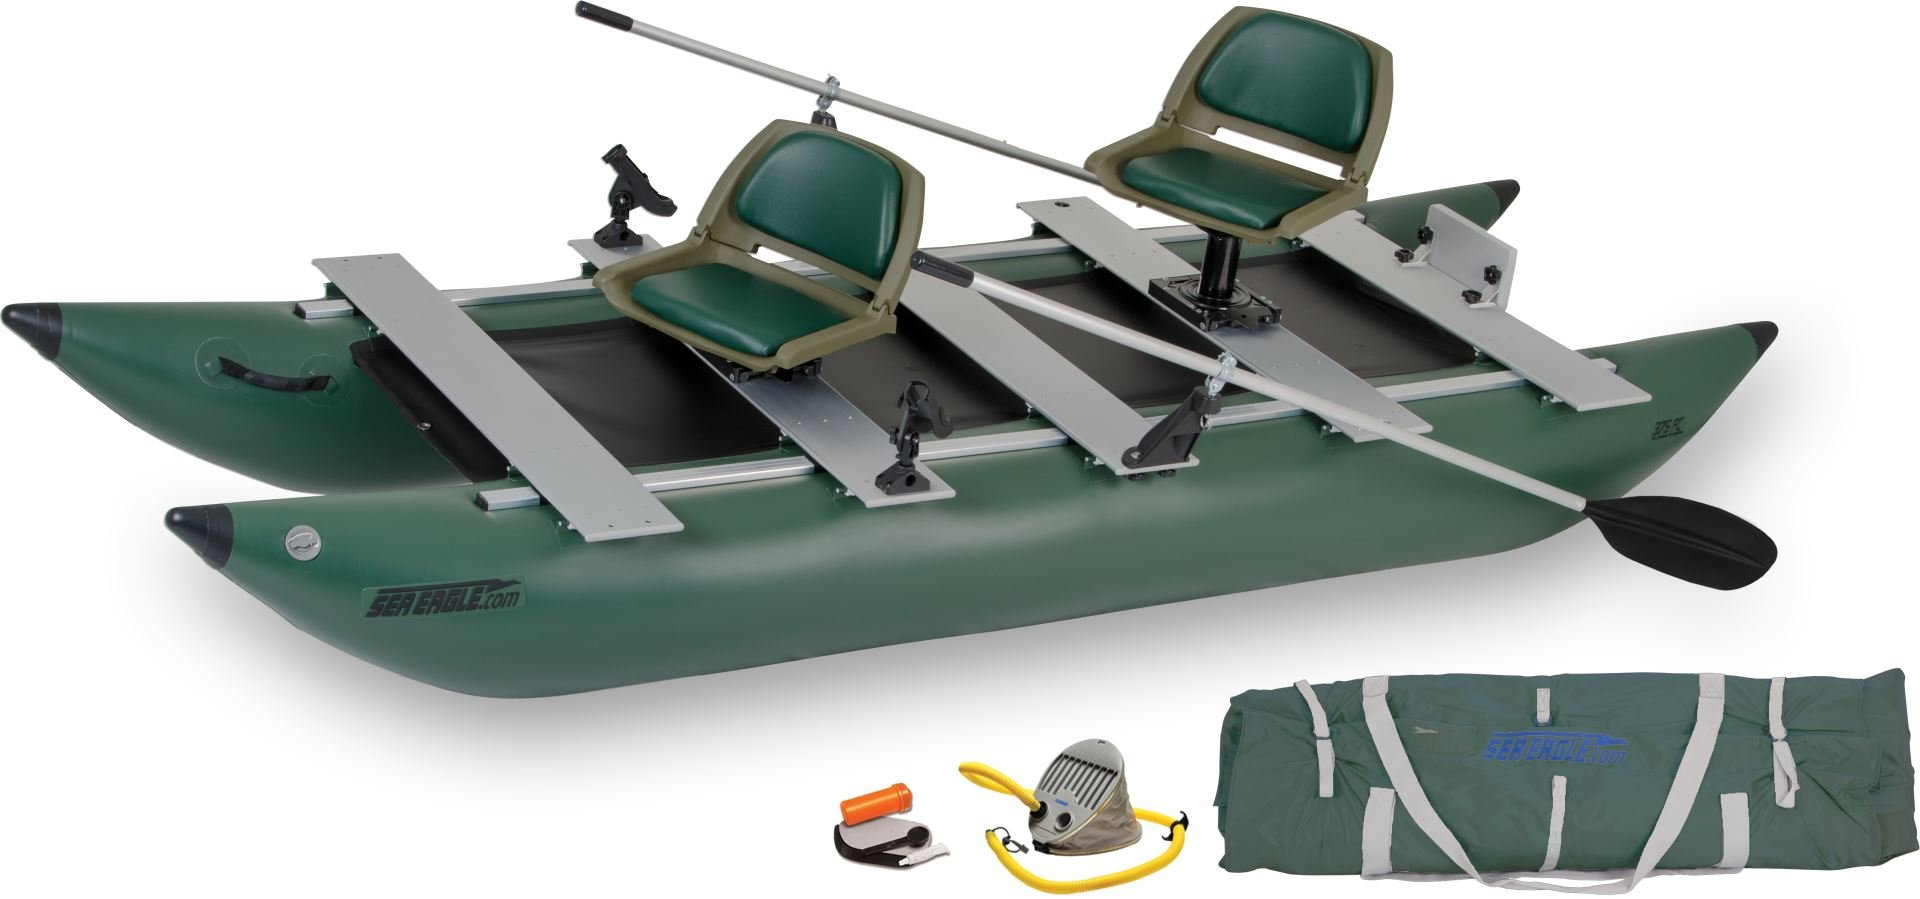 Sea Eagle Green 375FC Inflatable FoldCat Fishing Boat - Deluxe Guide Package